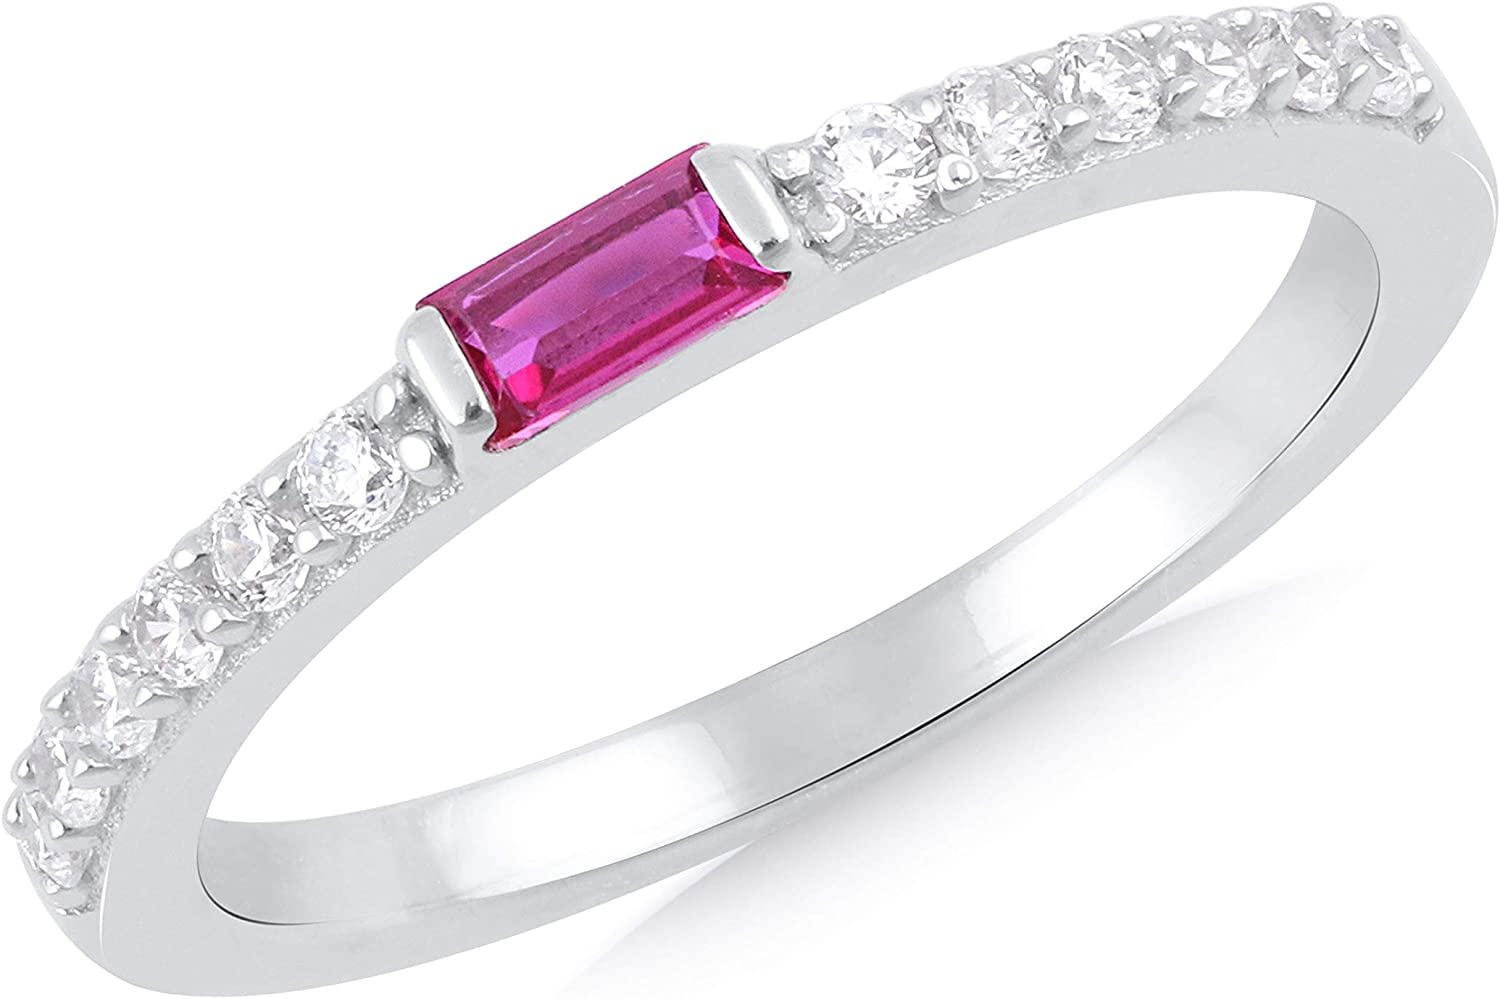 Silgo 925 Sterling Silver Rhodium Plated Pink & White Cubic Zirconia Gemstone Eternity Ring for Women